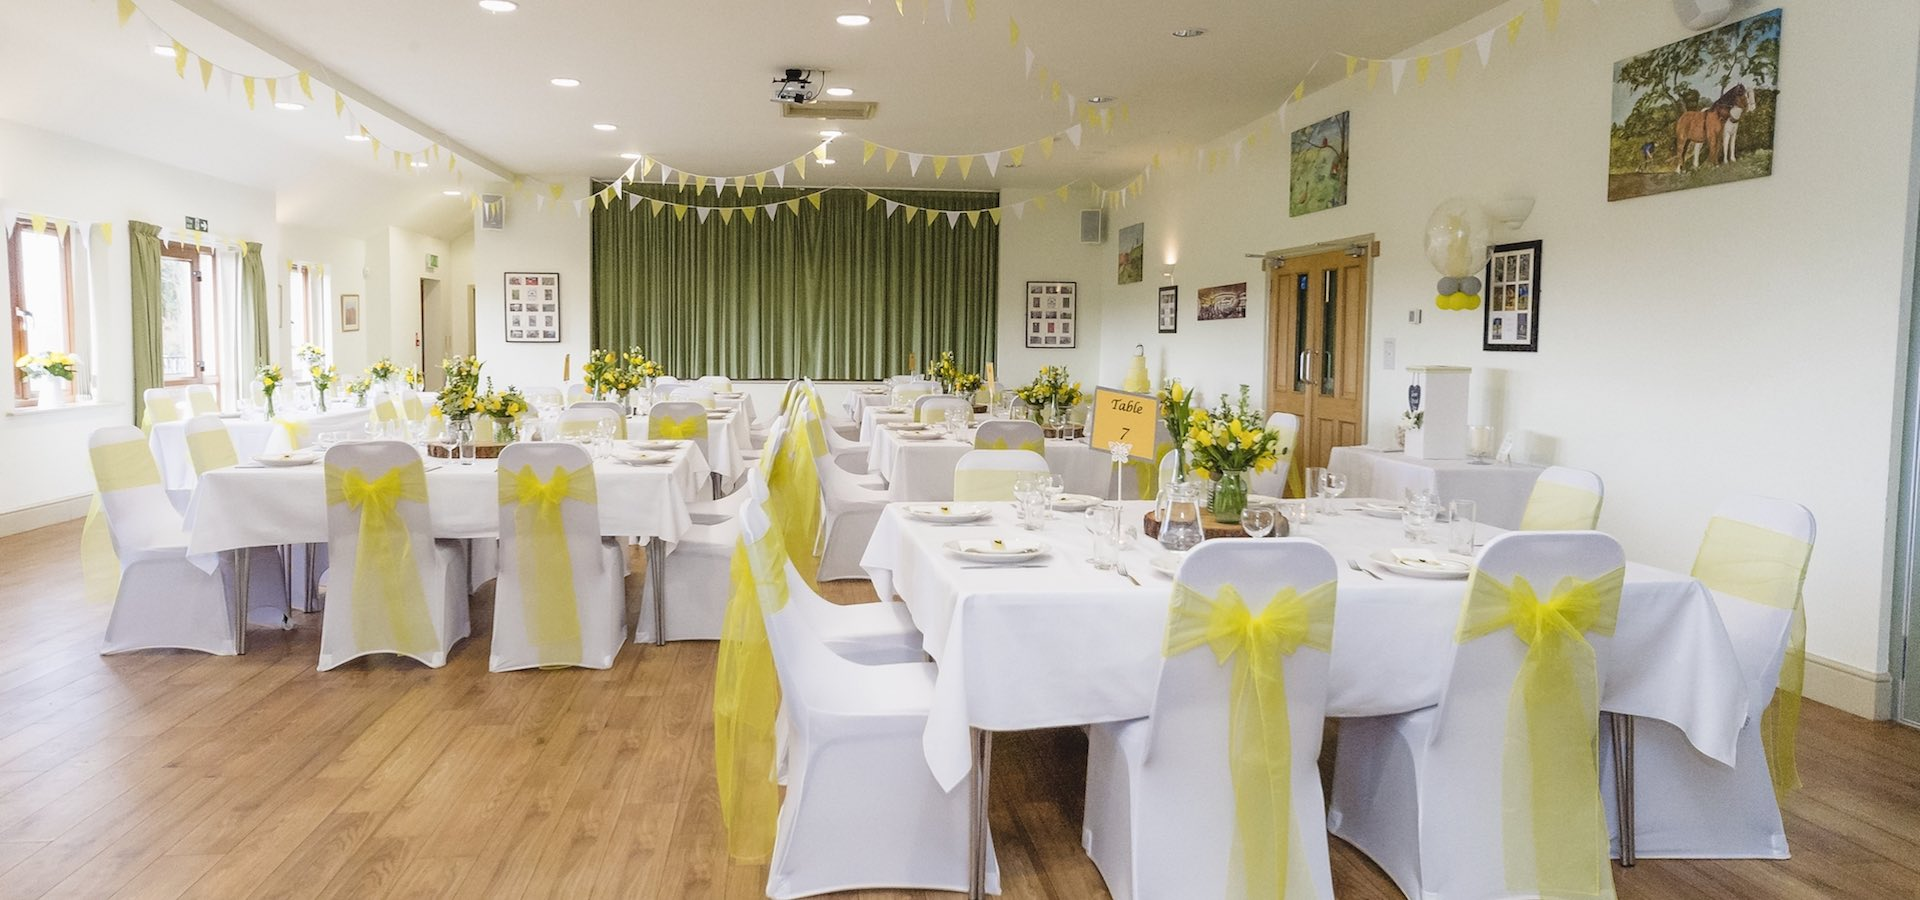 Blymhill and Weston Under Lizard Village Hall Wedding Venue 1